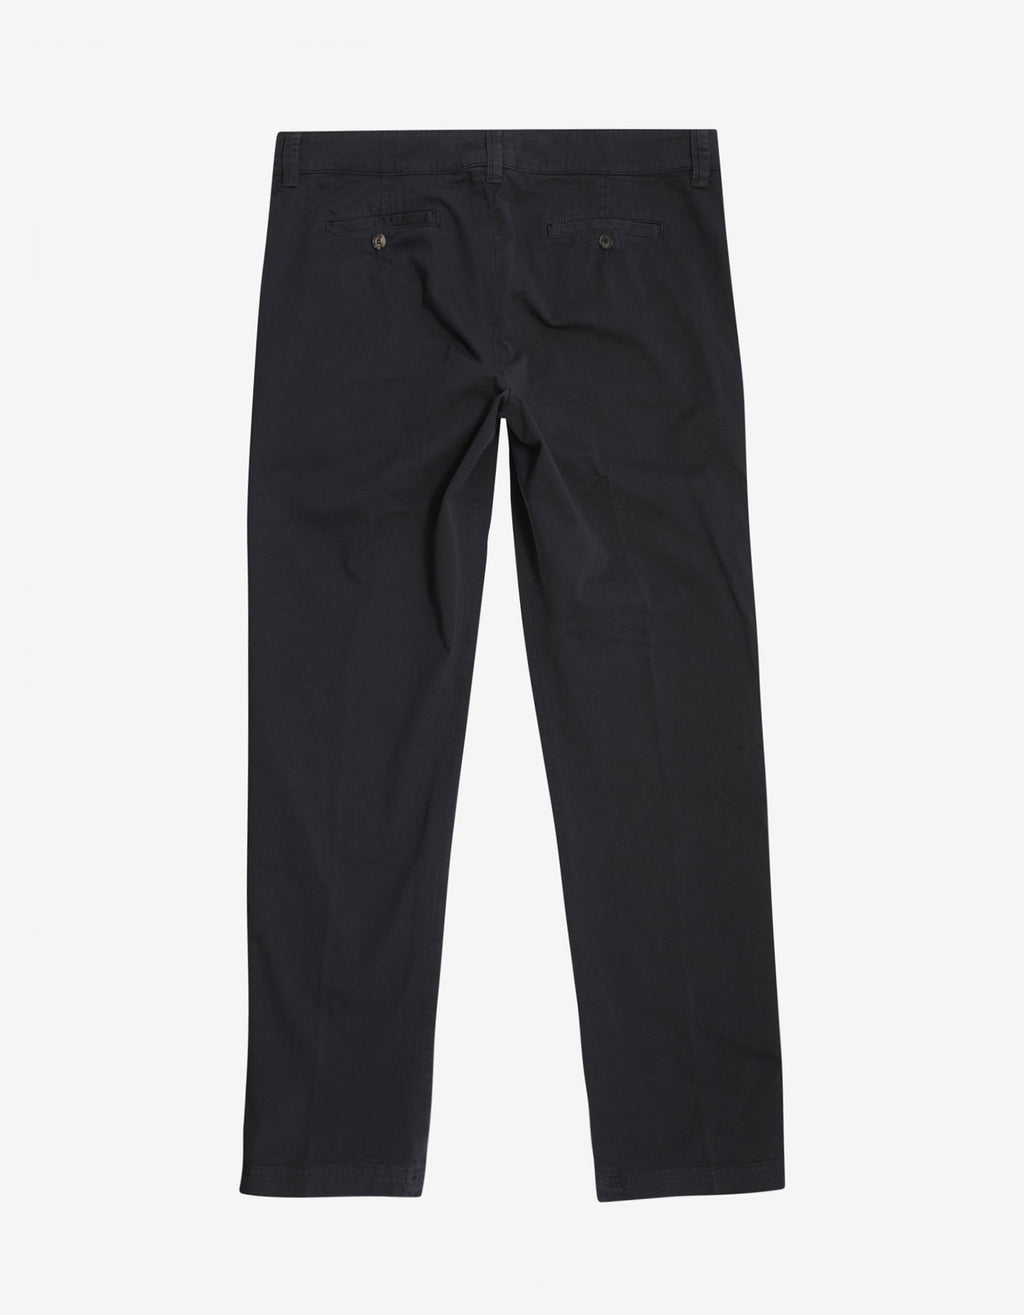 Navy Blue Classic Chino Trousers